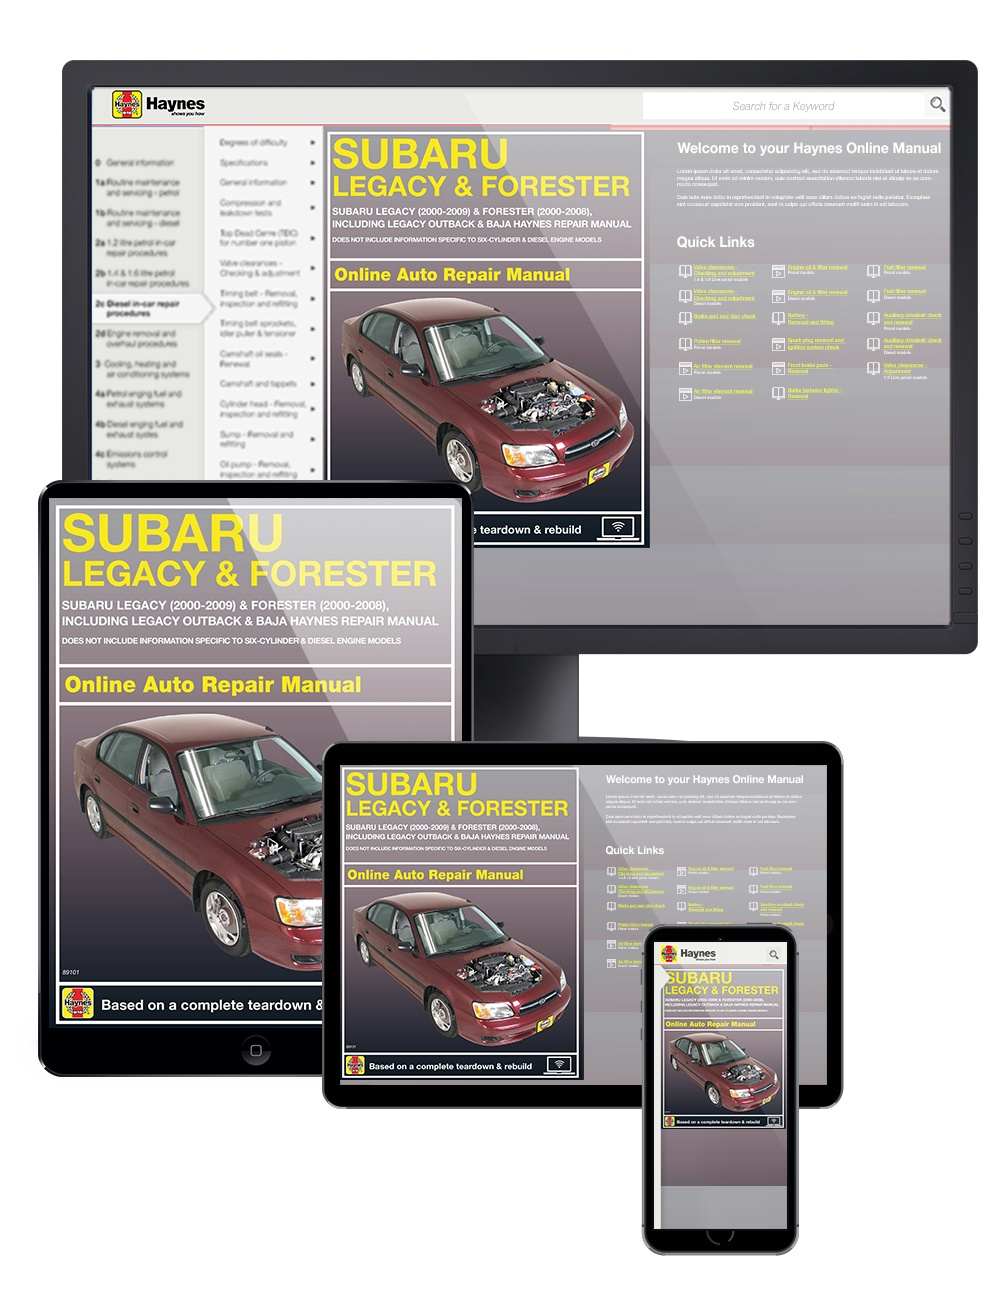 Subaru Legacy and Forester (00-09) Haynes Online Manual (Including Outback and Baja)